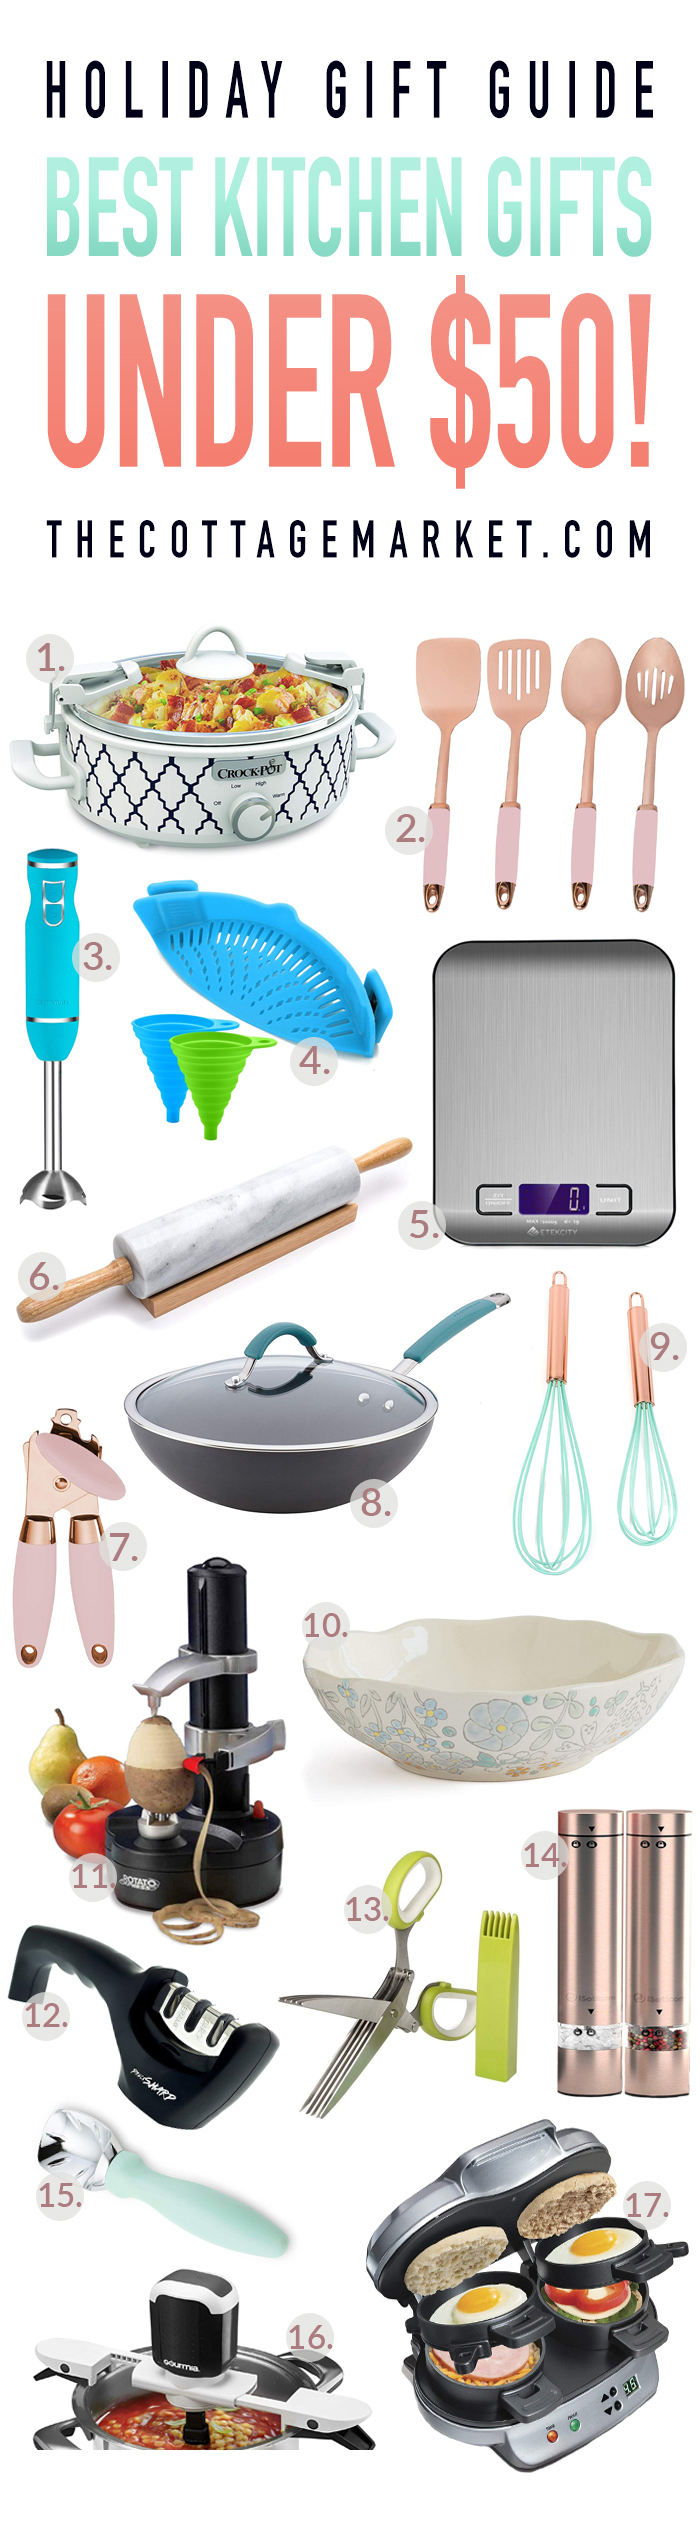 This Holiday Gift Guide for the Best Kitchen Gifts Under $50 is going to take care of all of your friends and family that love to cook!